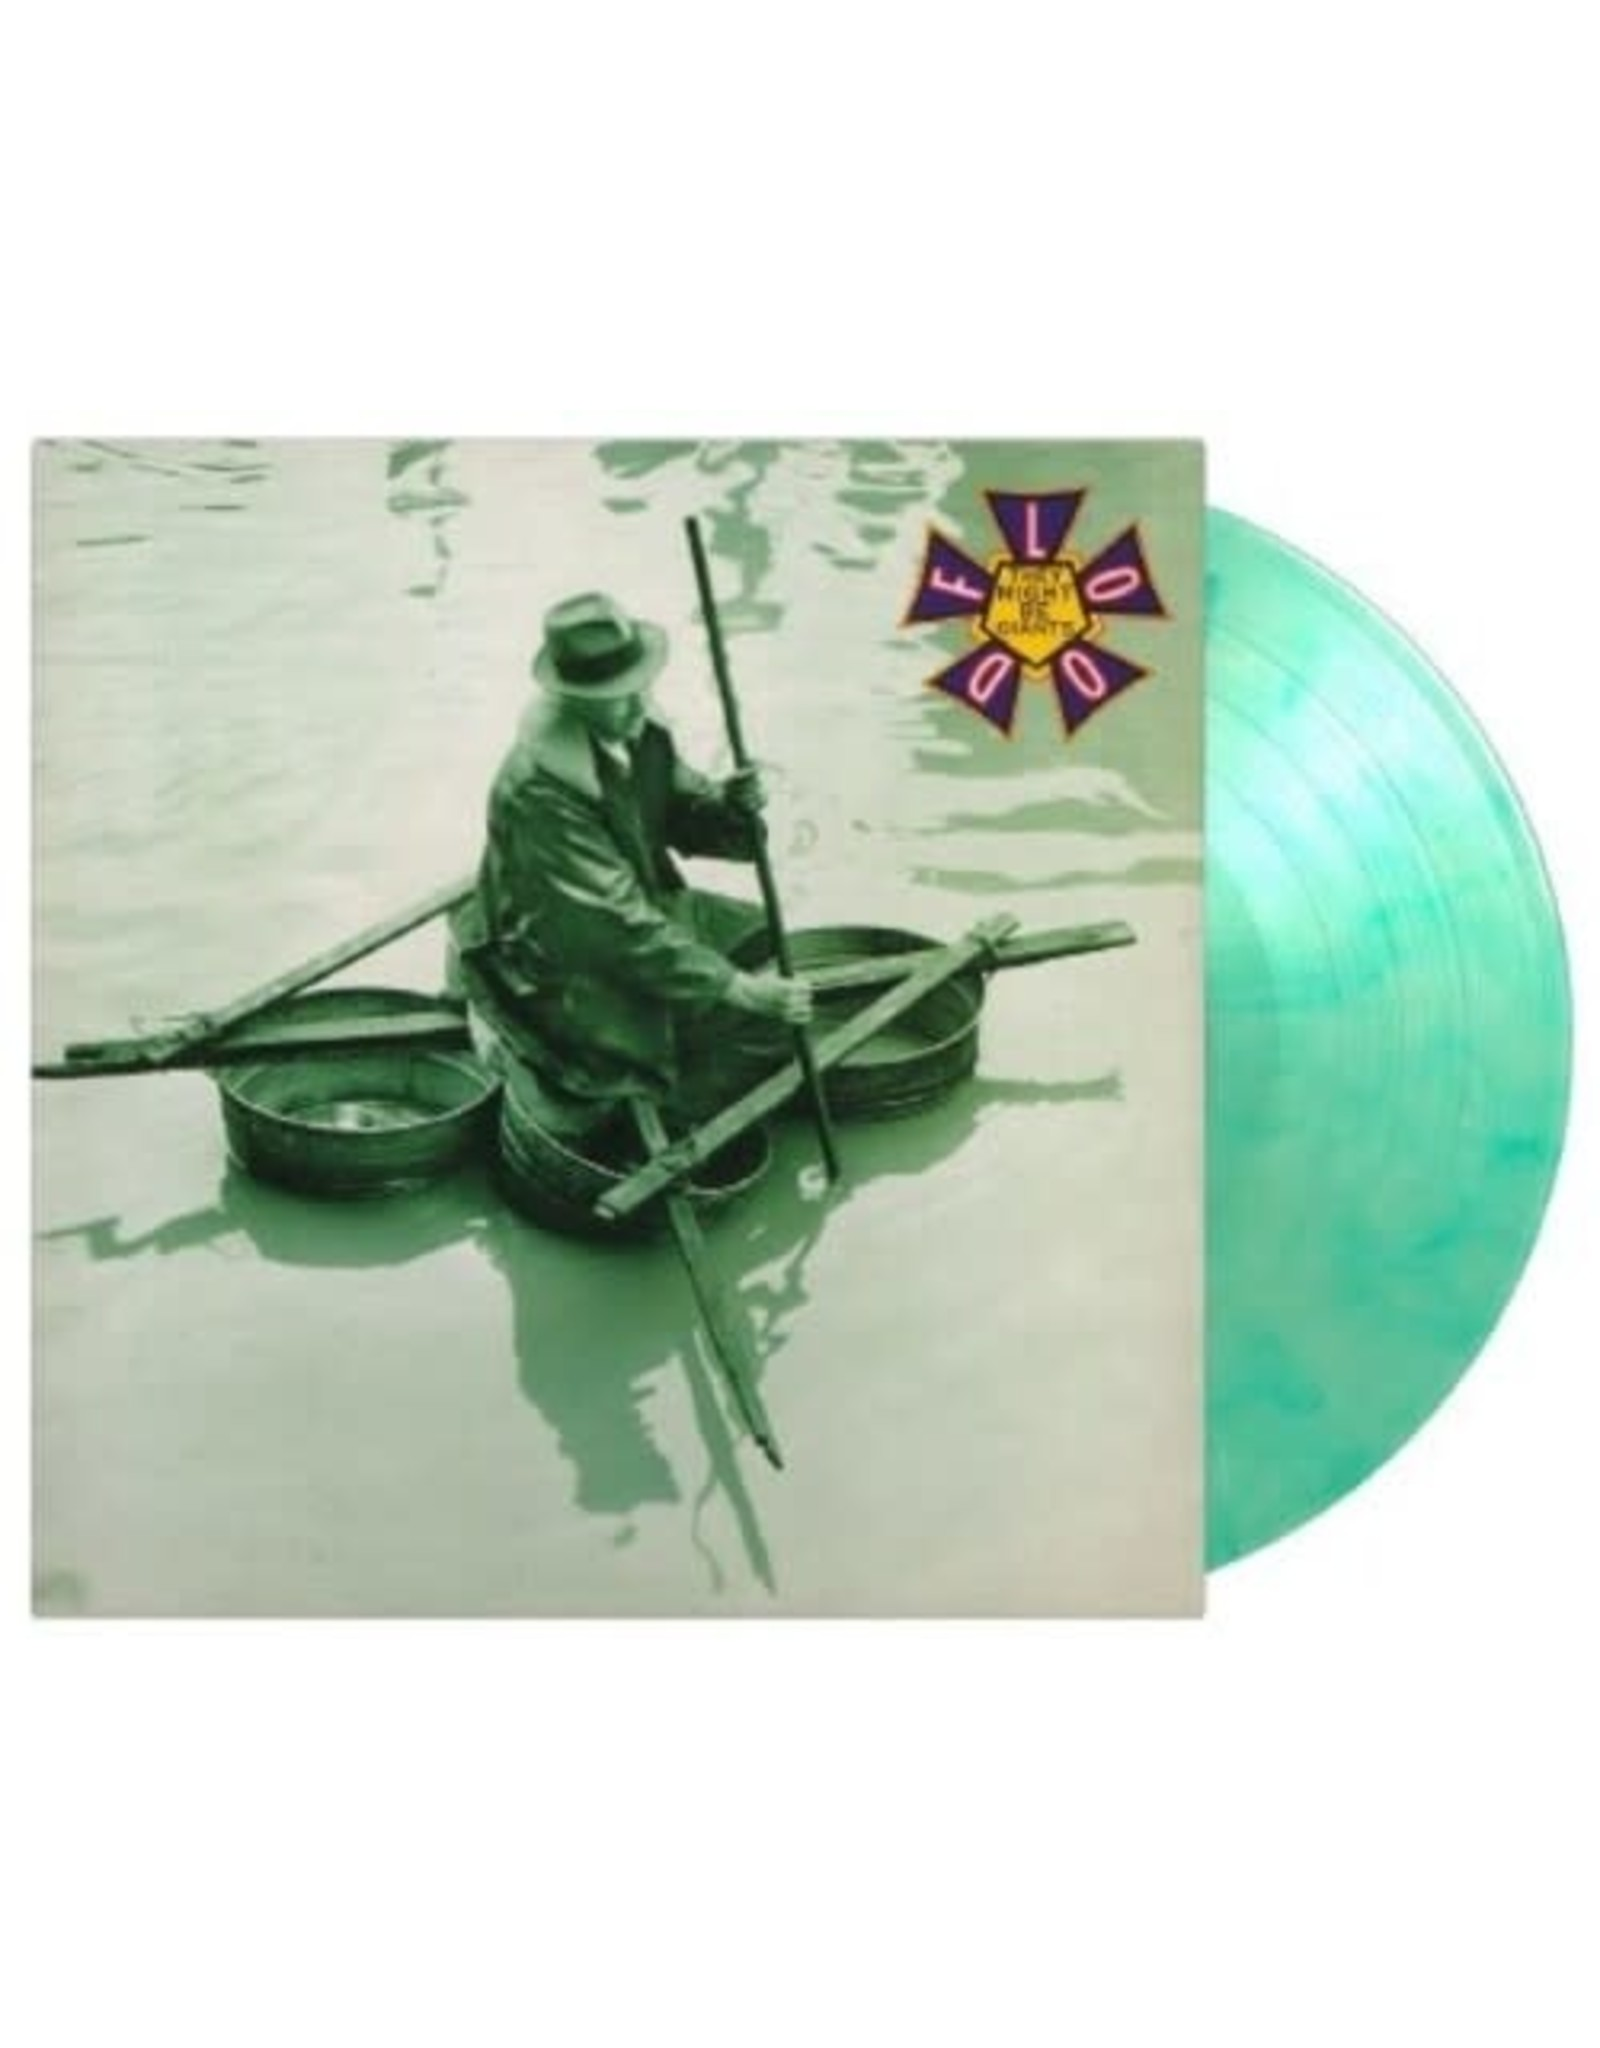 New Vinyl They Might Be Giants - Flood (Import, Colored) LP